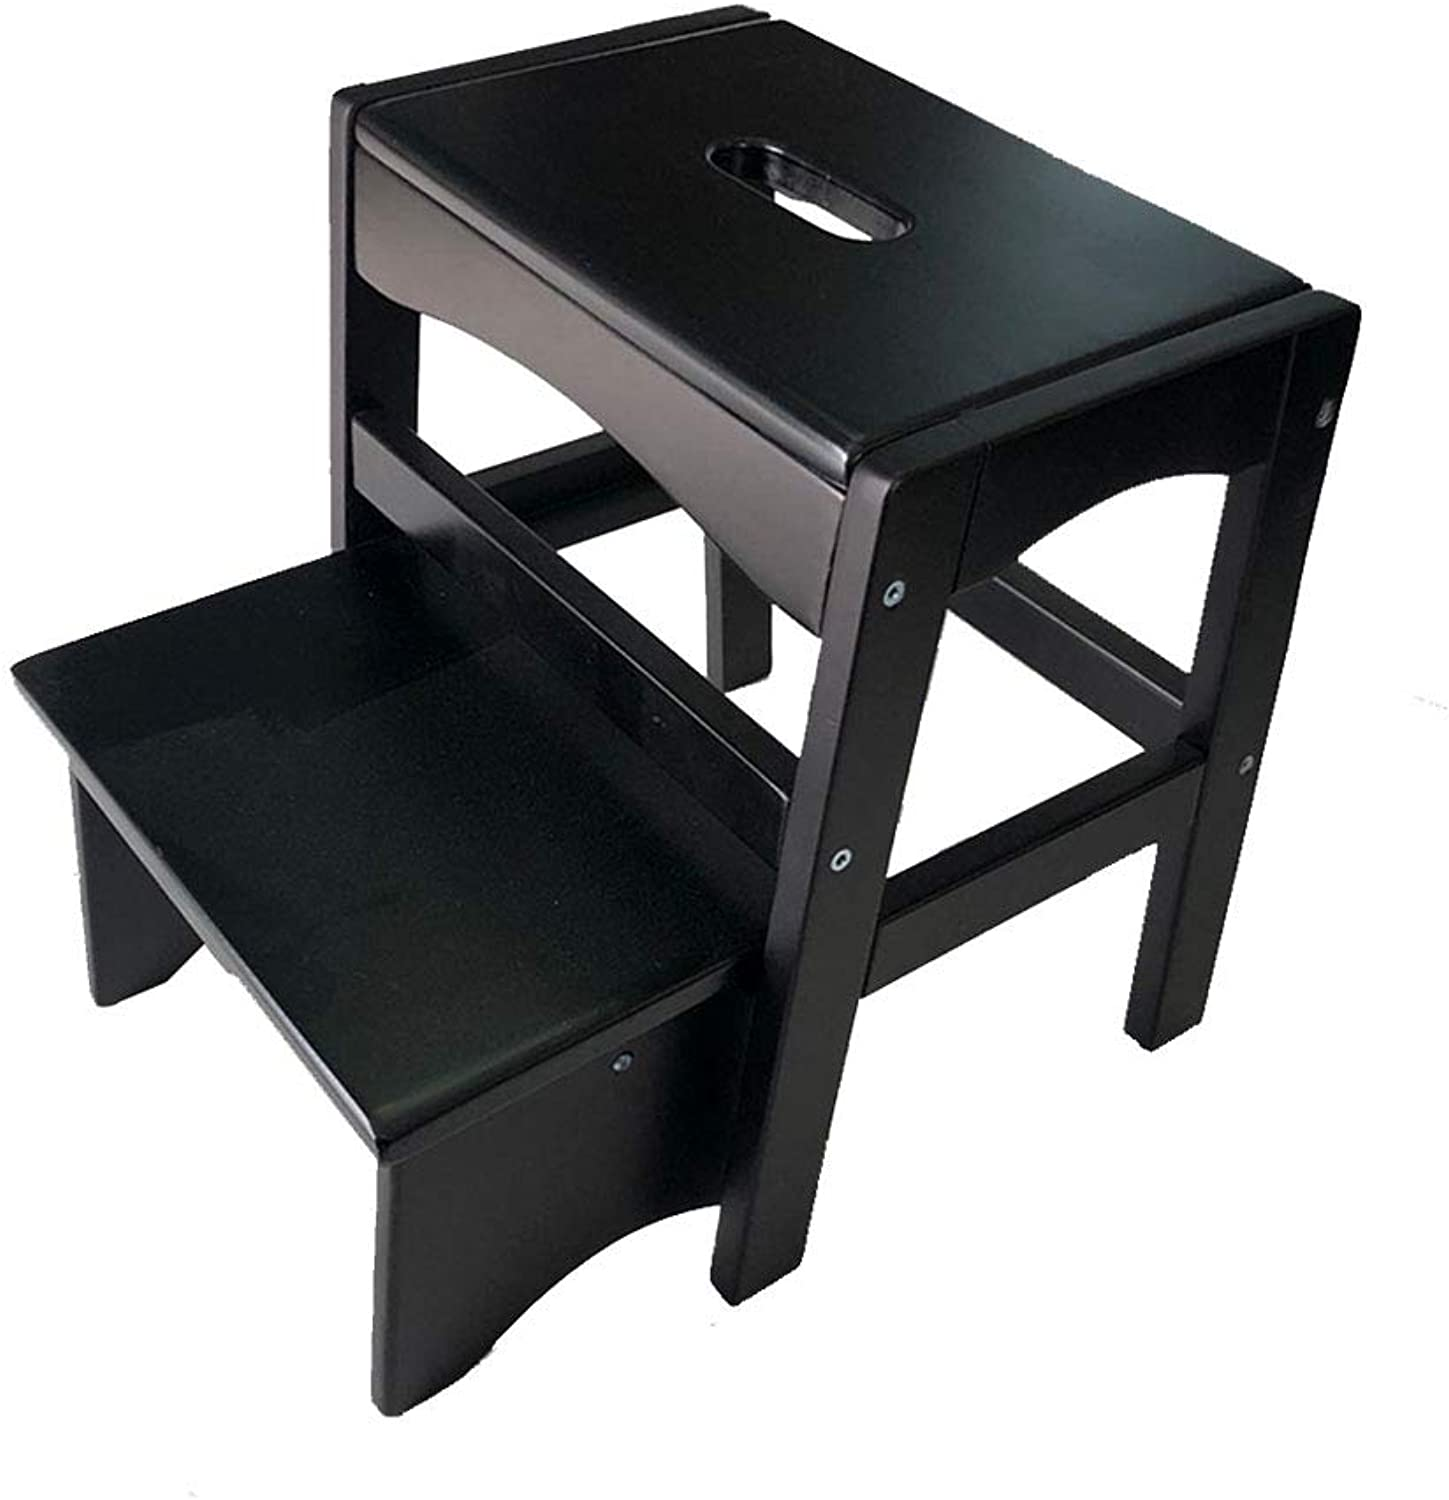 Ladder Stool Heighten Scalable Solid Wood Small Stool Change shoes Ascending Stool